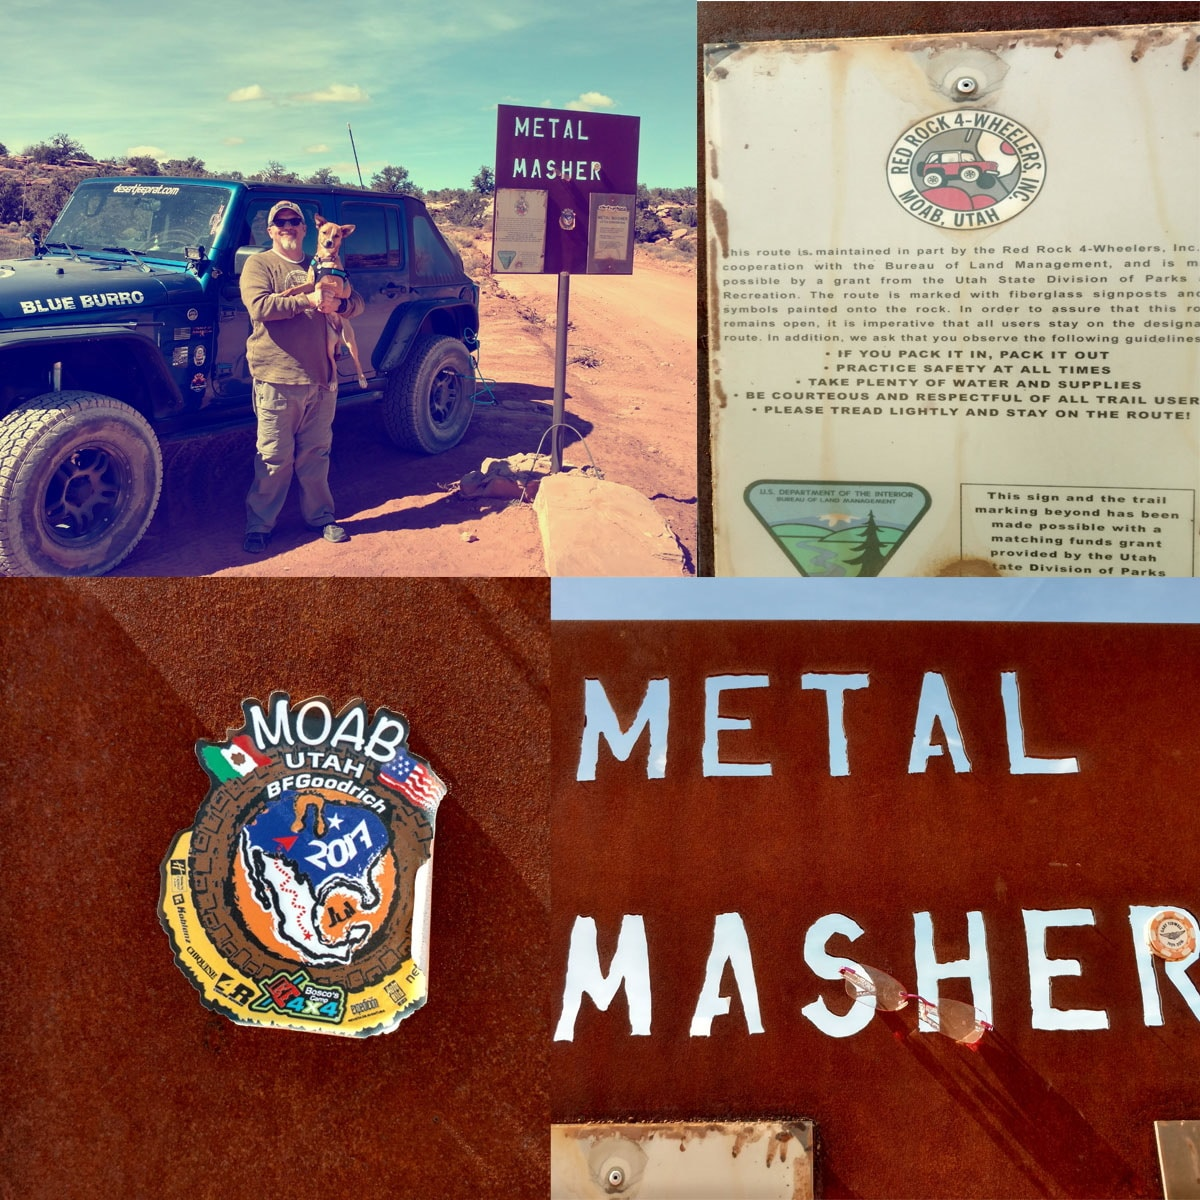 Metal Masher Moab Utah